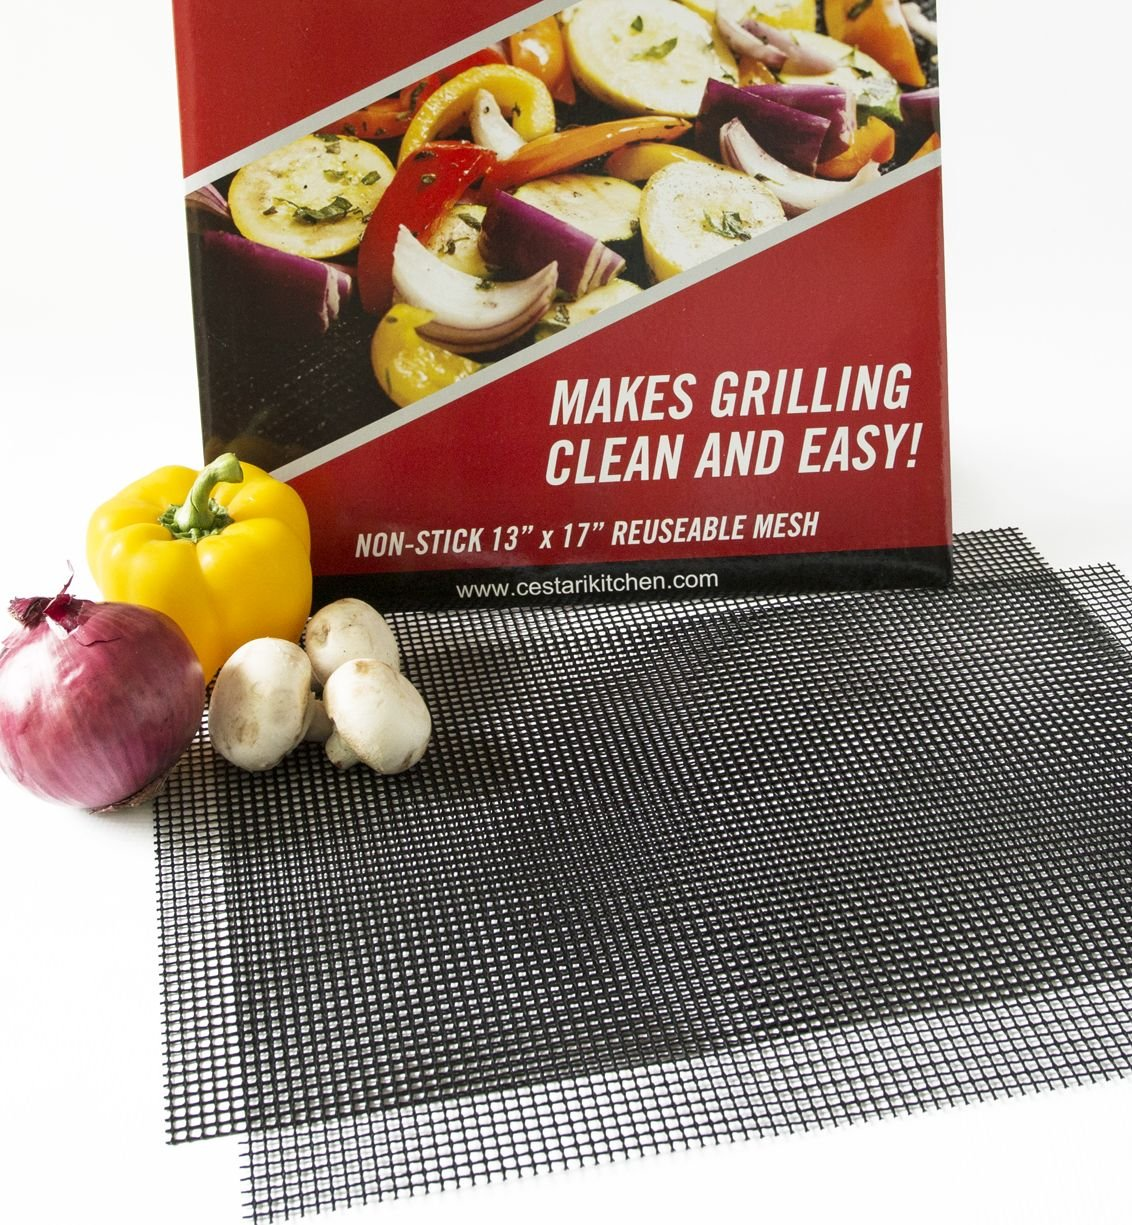 BBQ Mat Replaces Vegetable Grill Basket | PFOA Free Grill Mesh Tray for Grilled Vegetables, Fish, Fajitas, Shrimp | Grill Set of 2 Extra Large Nonstick Grill Mats |13 x 17 inches